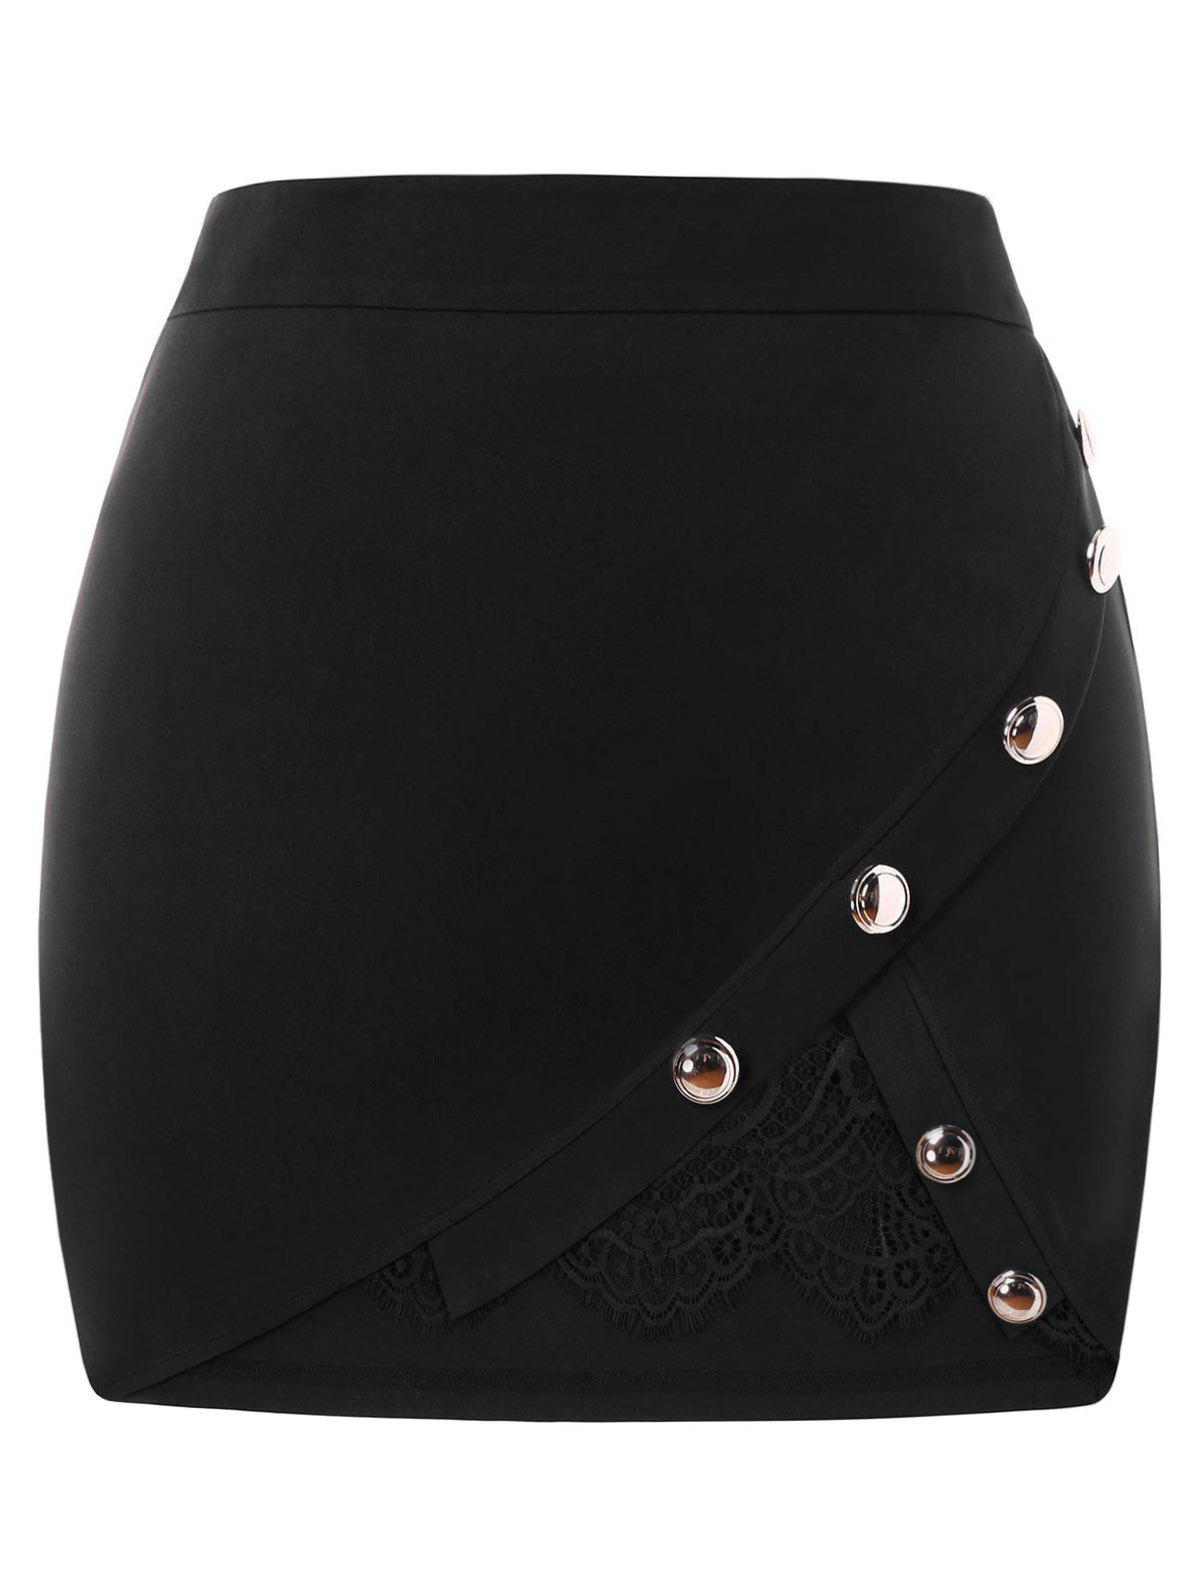 Plus Size Lace Panel Bodycon Skirt - BLACK L